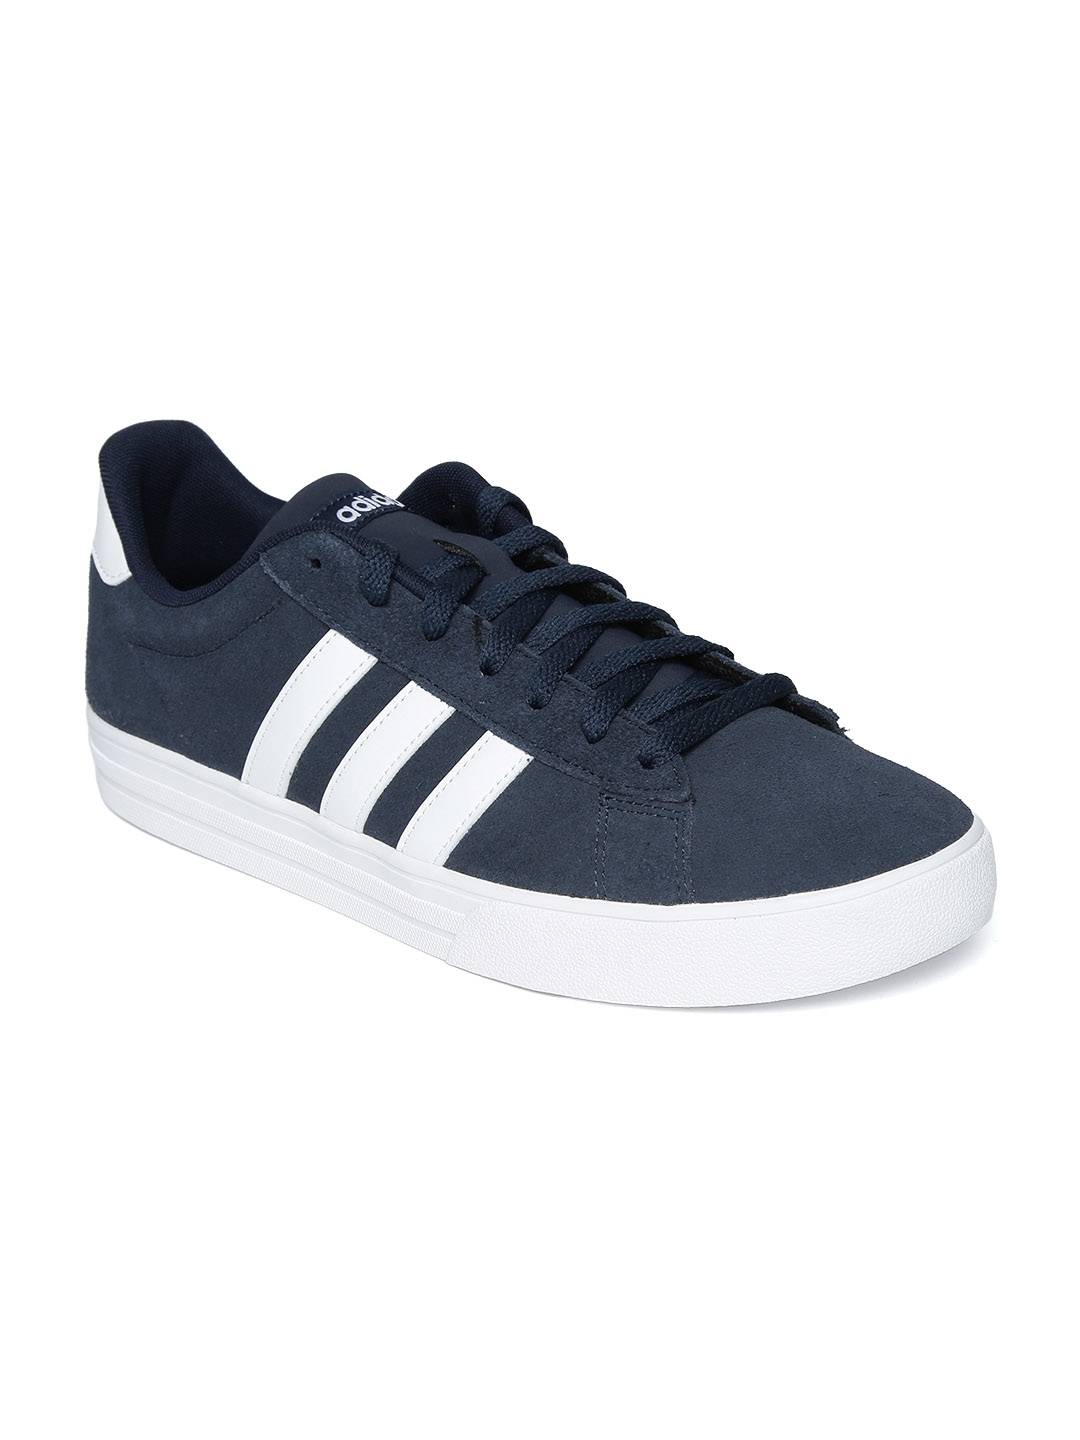 low priced 3a860 01a72 Adidas Men Navy Blue DAILY 2.0 Basketball Shoes